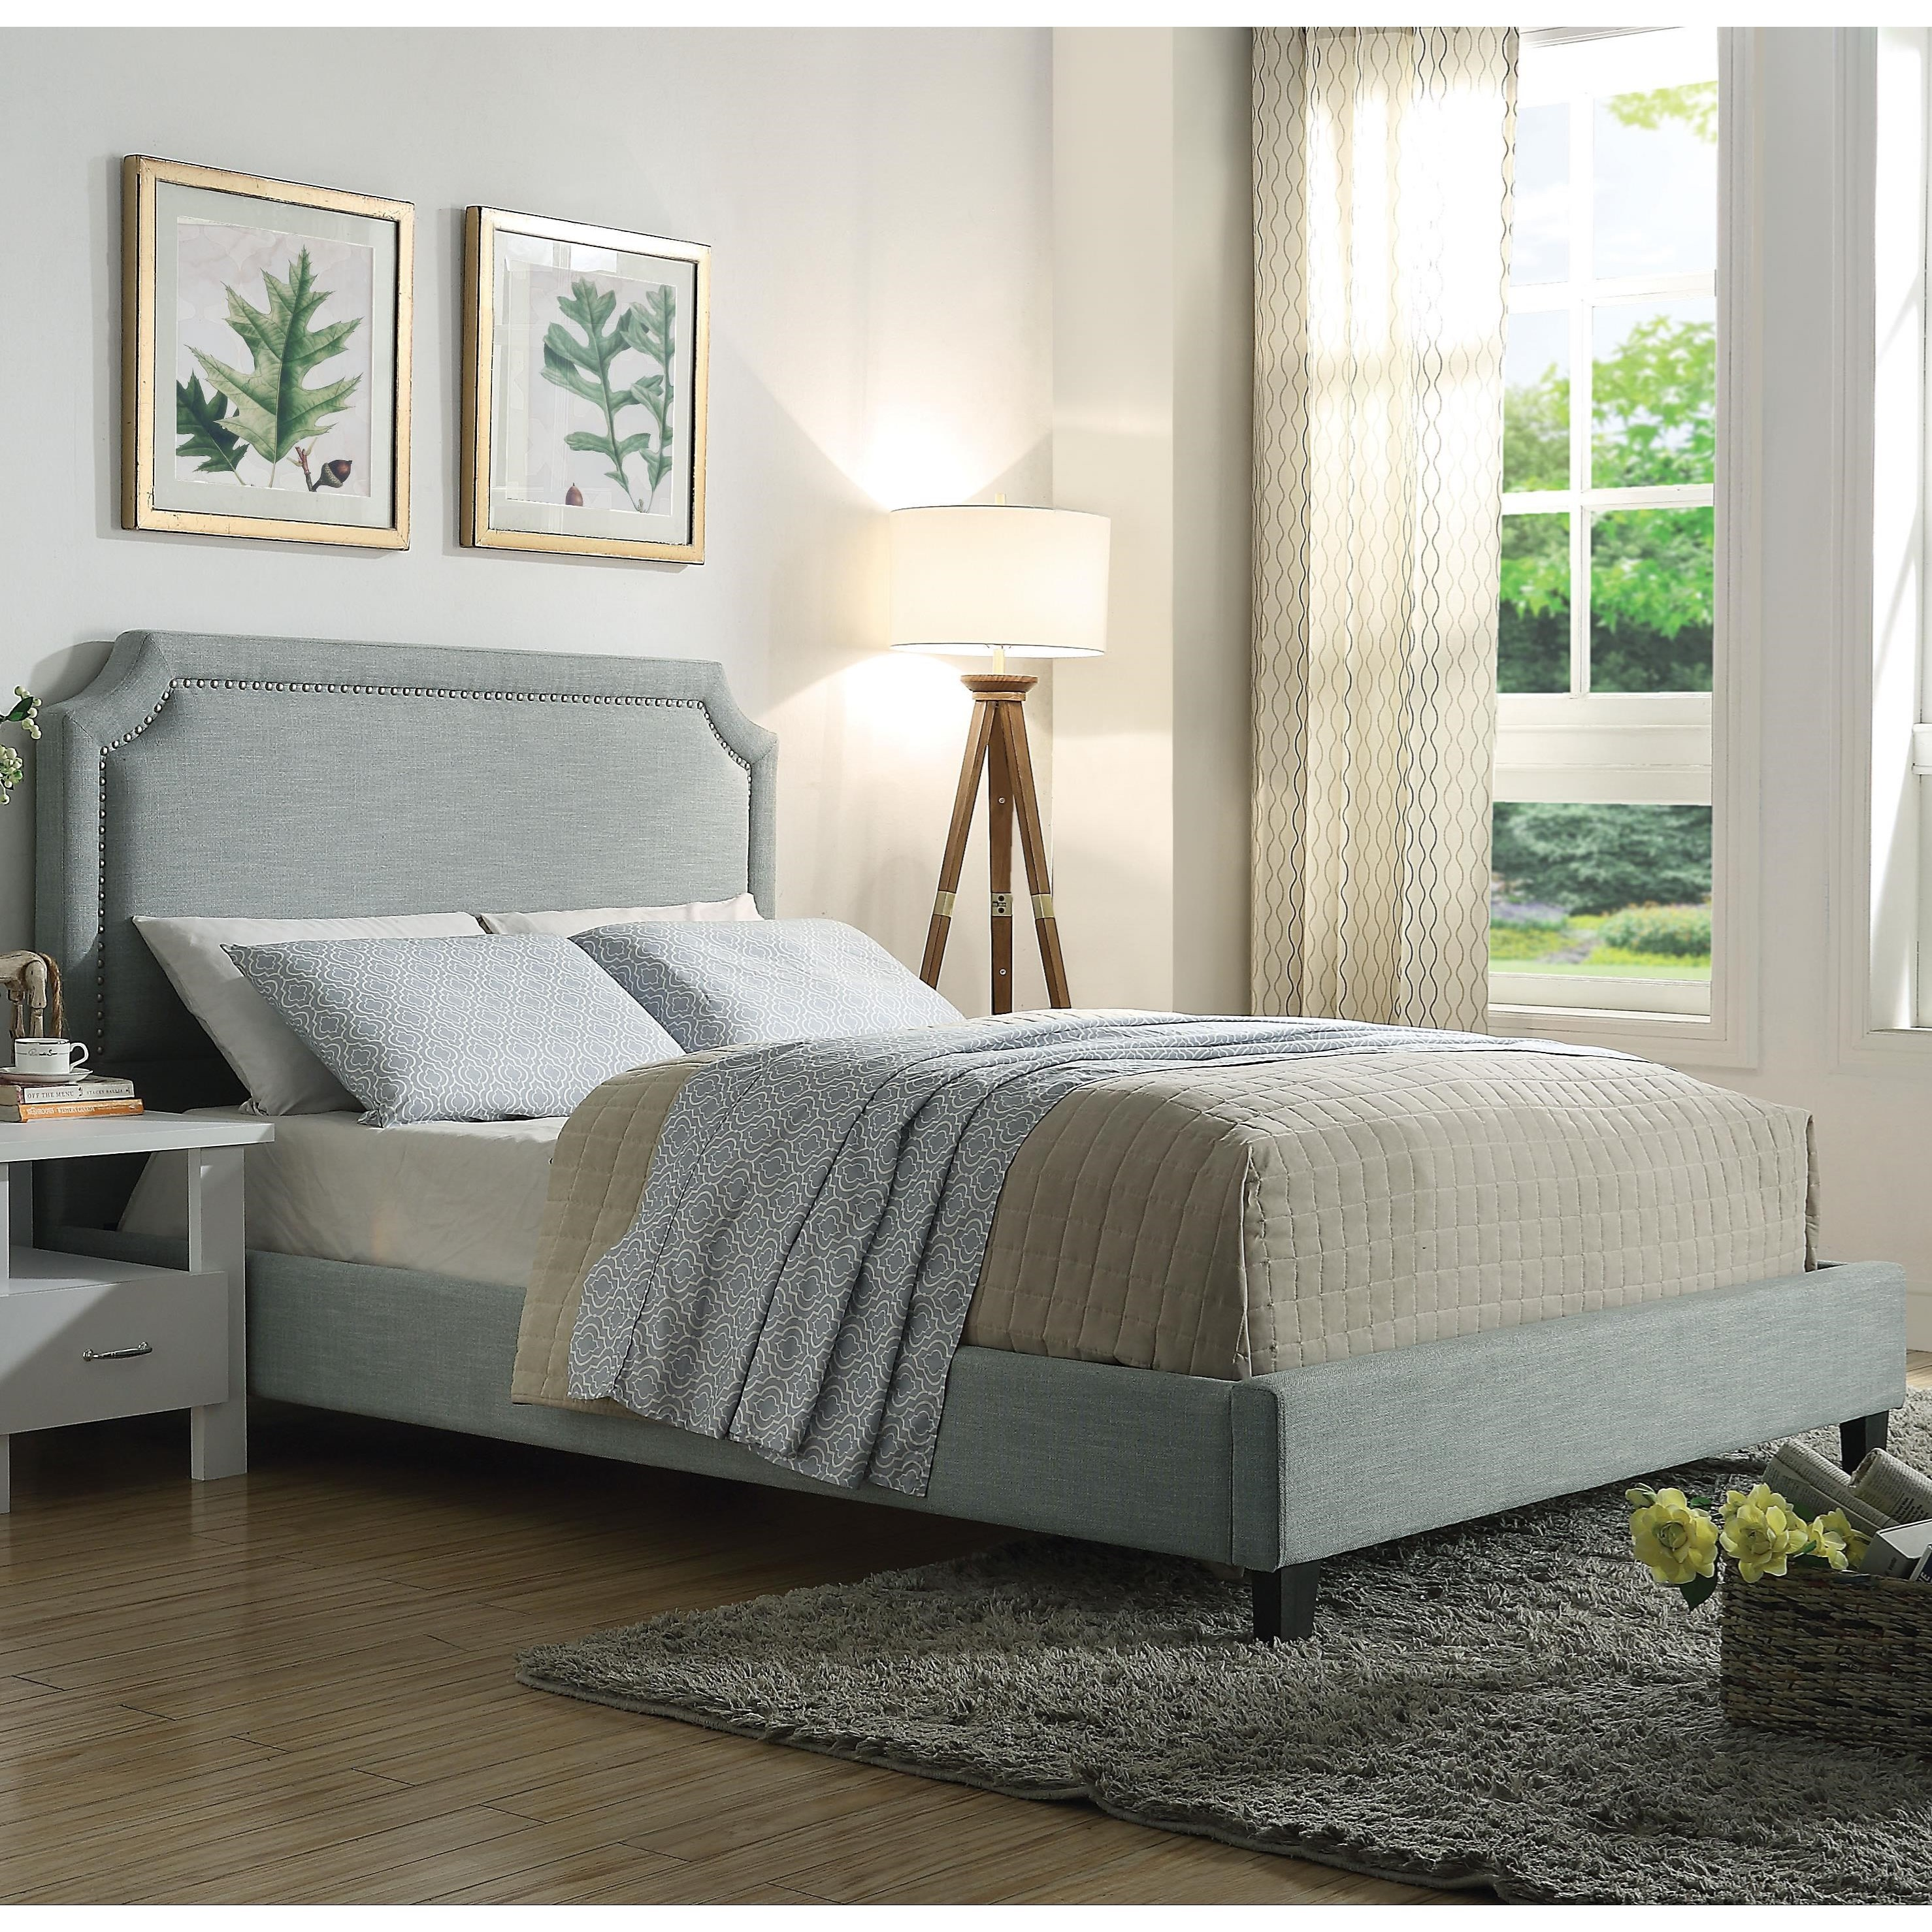 Amias Queen Bed by Acme Furniture at Carolina Direct